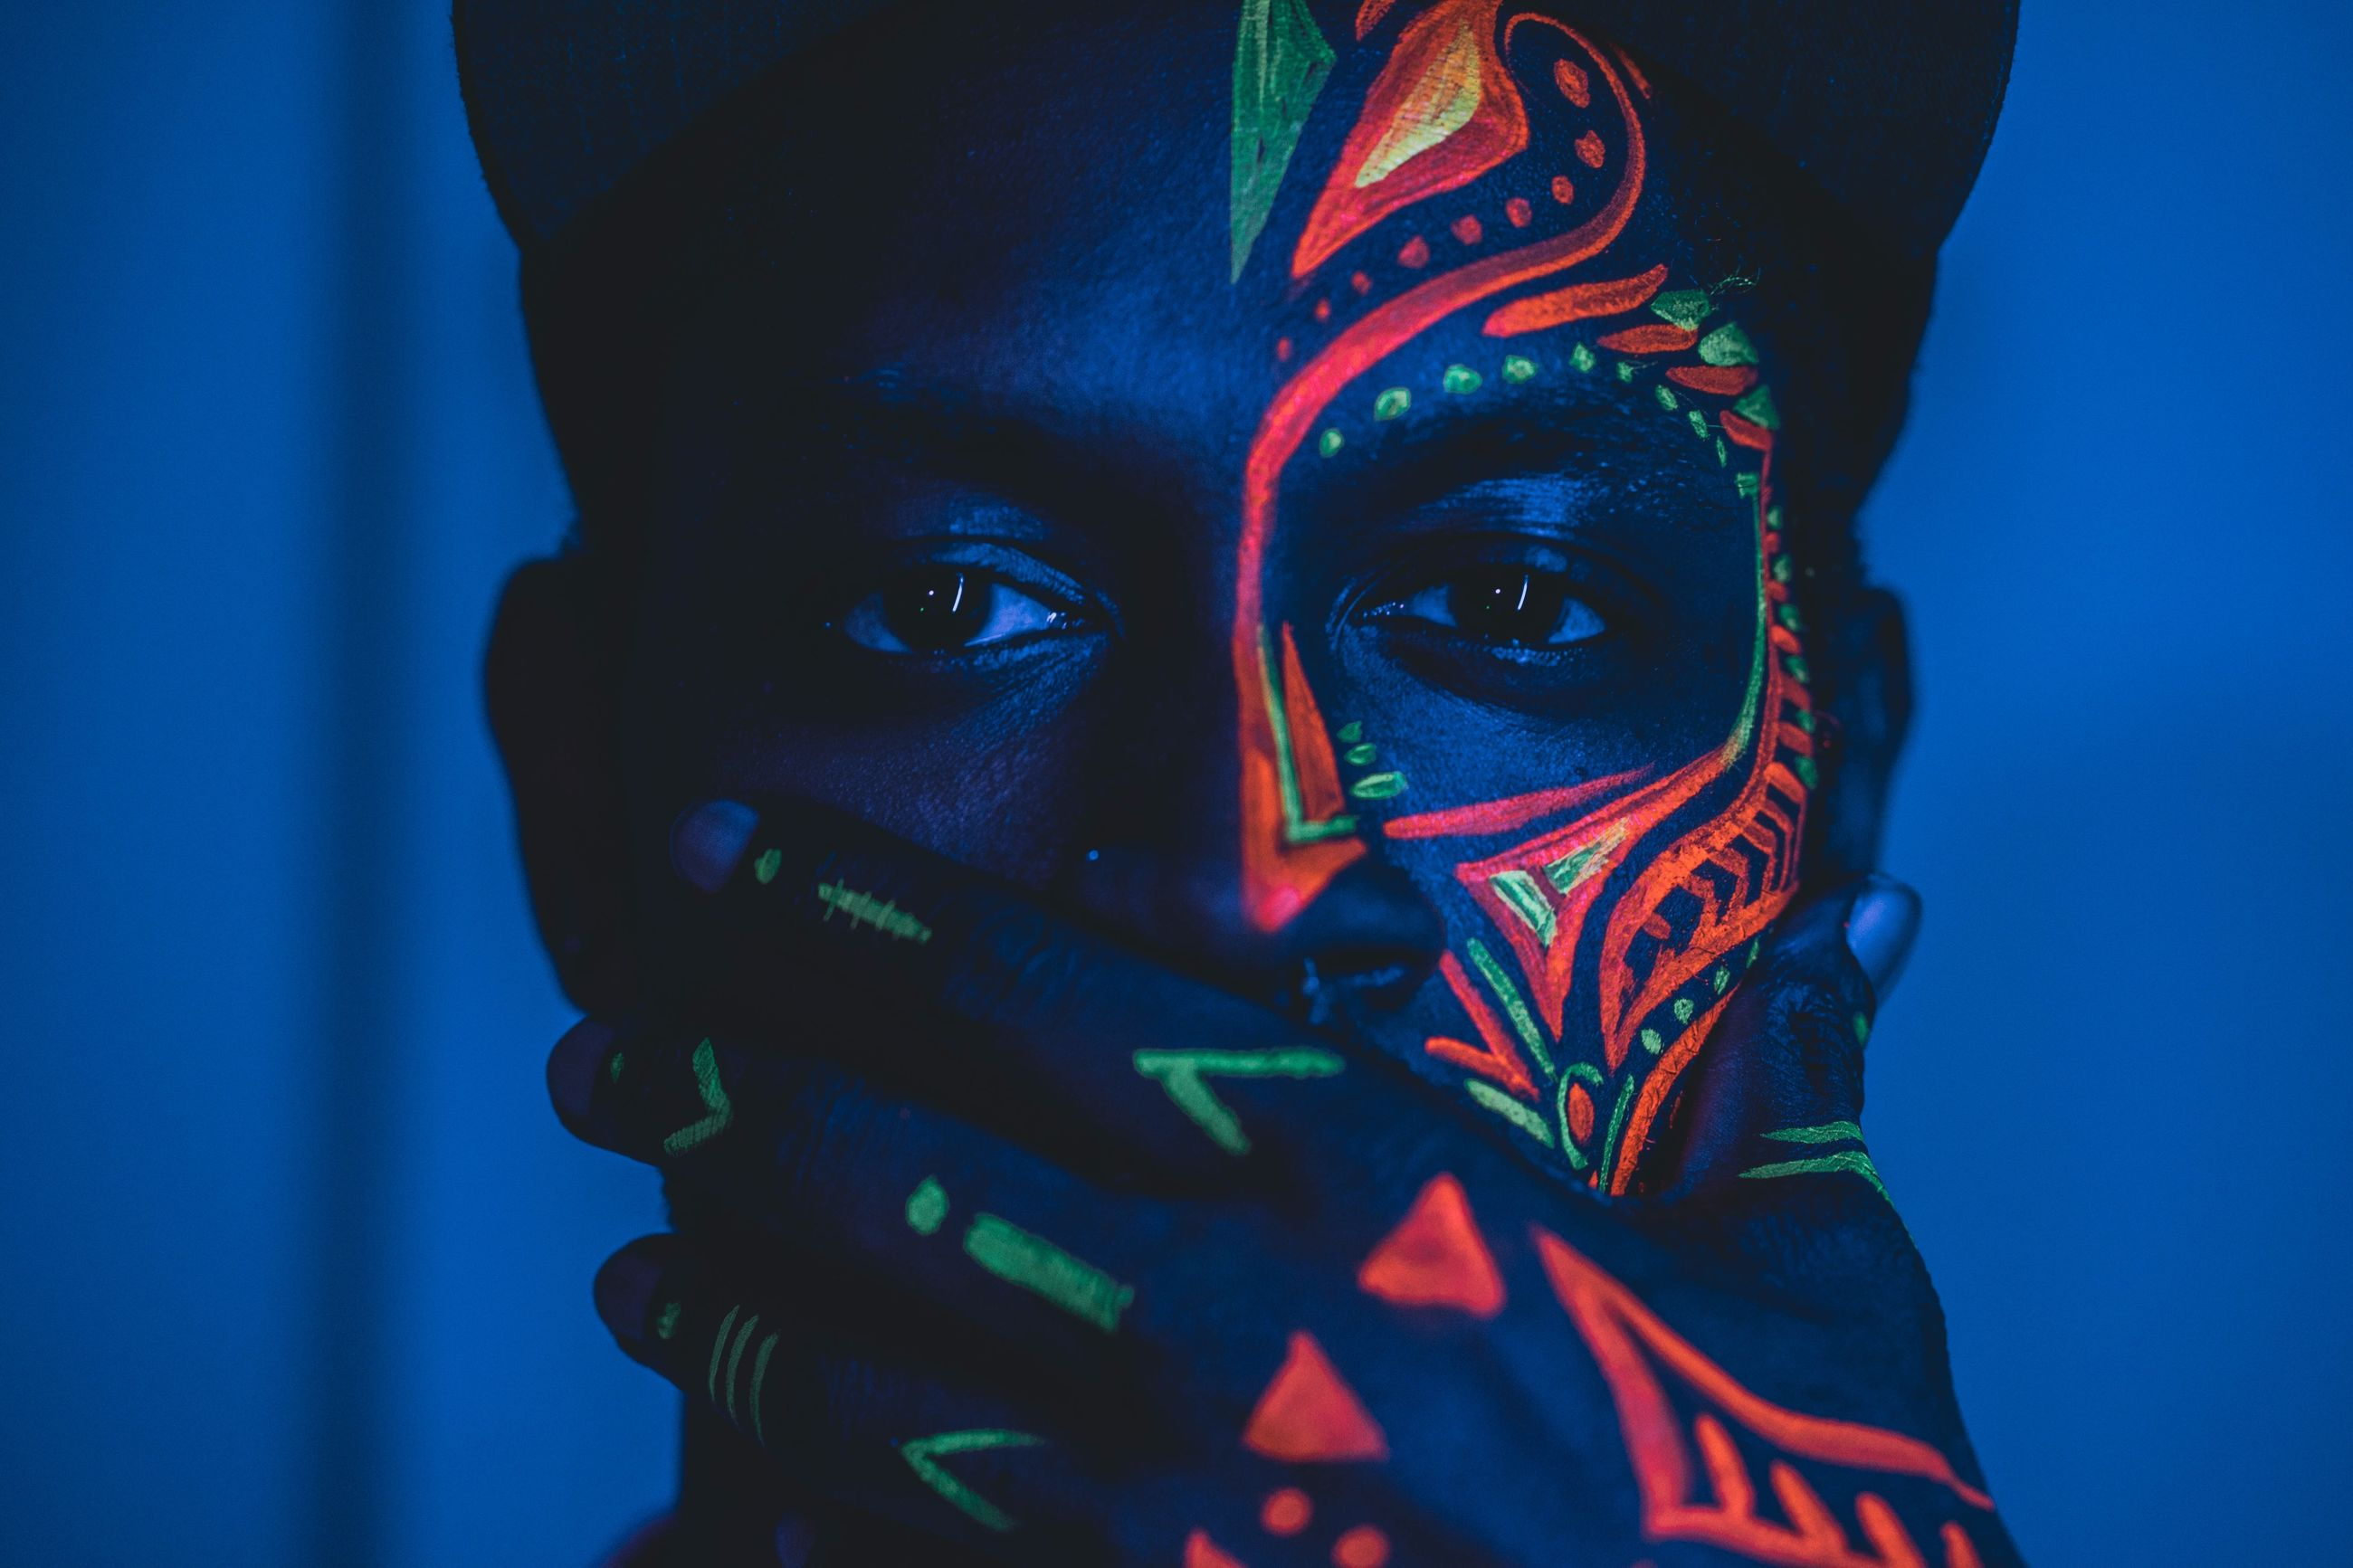 one person, portrait, headshot, body part, front view, human body part, young adult, indoors, looking at camera, multi colored, close-up, real people, human face, paint, lifestyles, young women, leisure activity, adult, light - natural phenomenon, obscured face, blue background, scarf, teenager